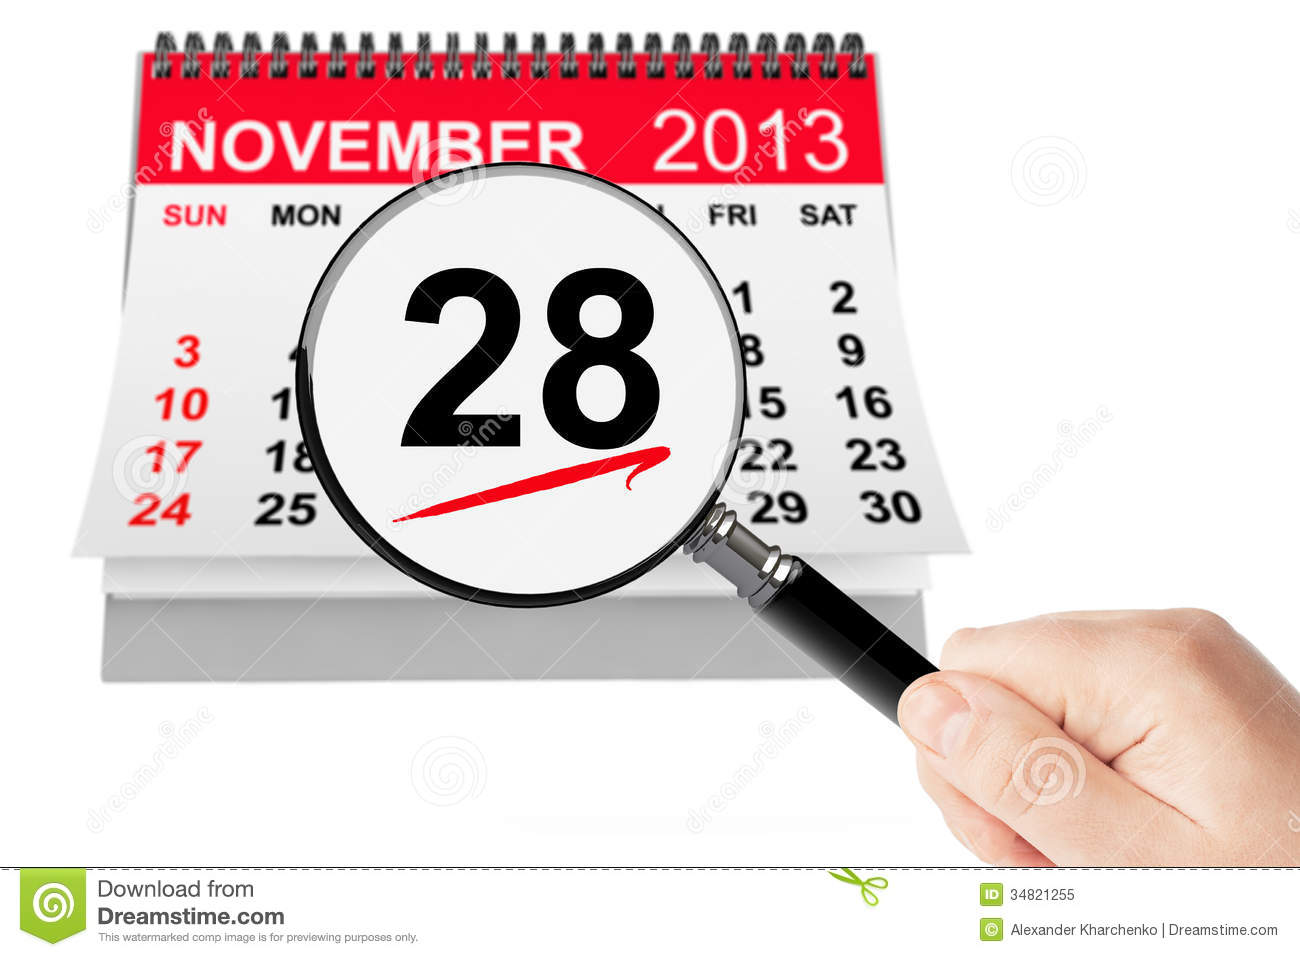 Calendar Date For Thanksgiving 2013 Calendar For Year 2013 United States Time And Date Thanksgiving Day Concept 28 November 2013 Calendar With